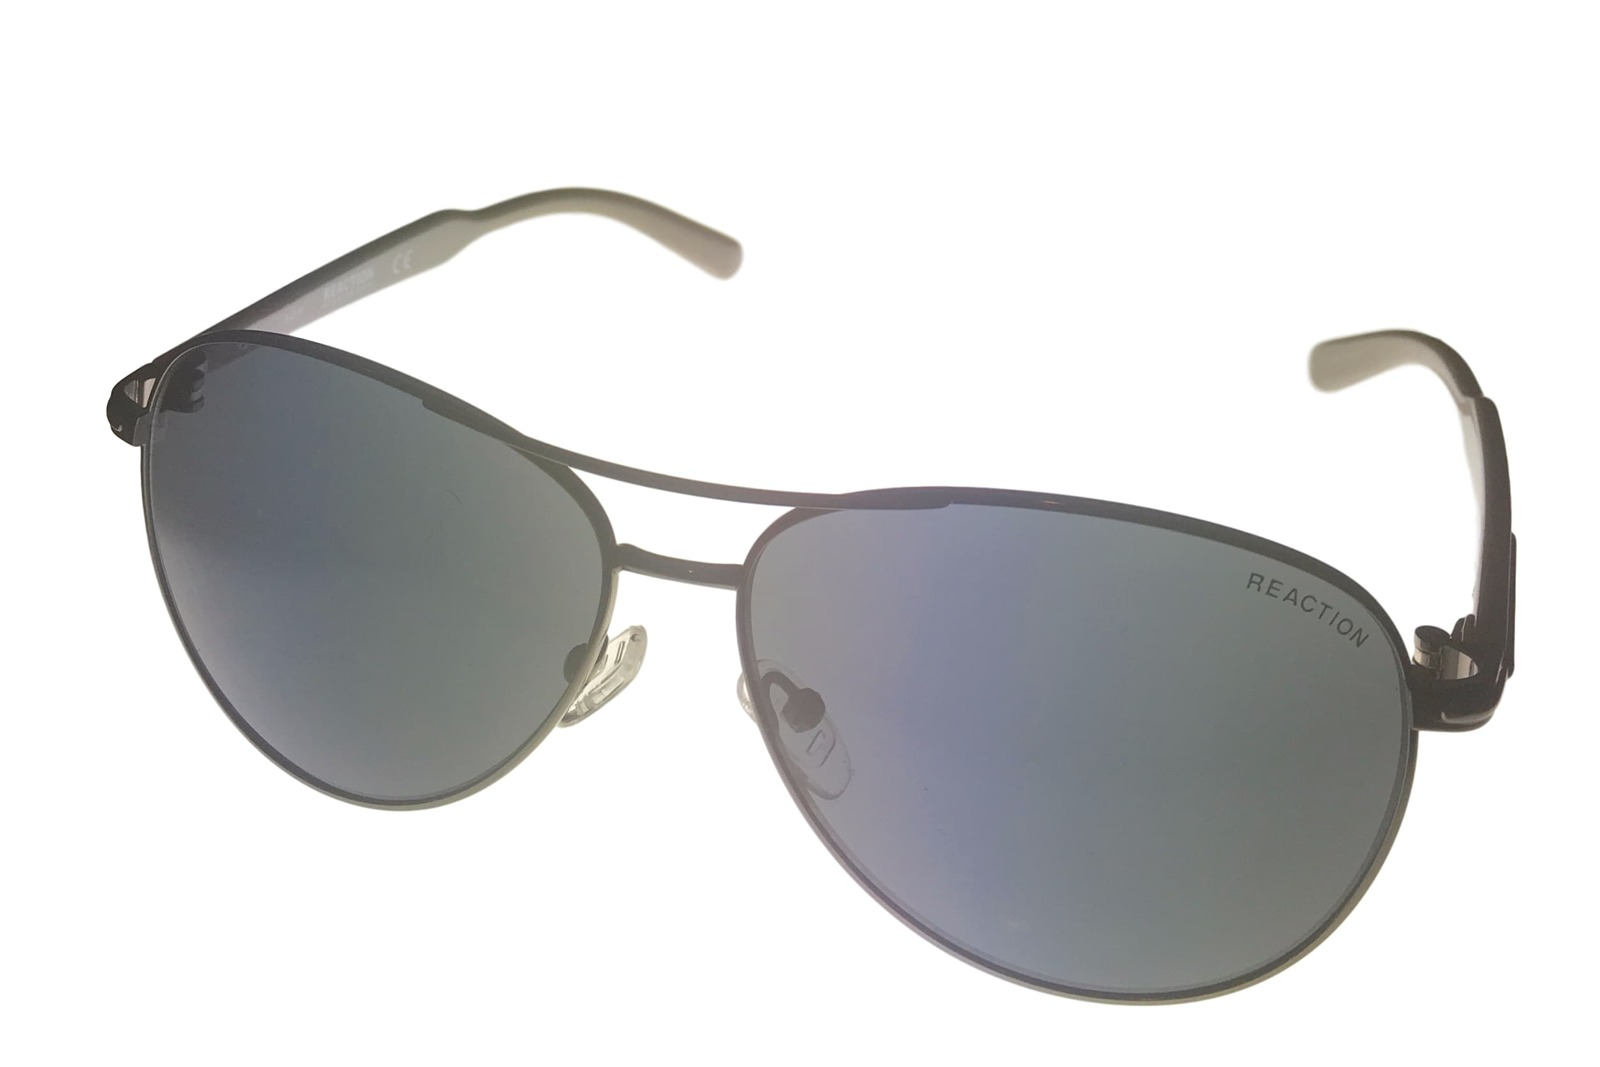 Primary image for Kenneth Cole Reaction  Mens Sunglass Metal Aviator,  KC1296 8A Gunmetal